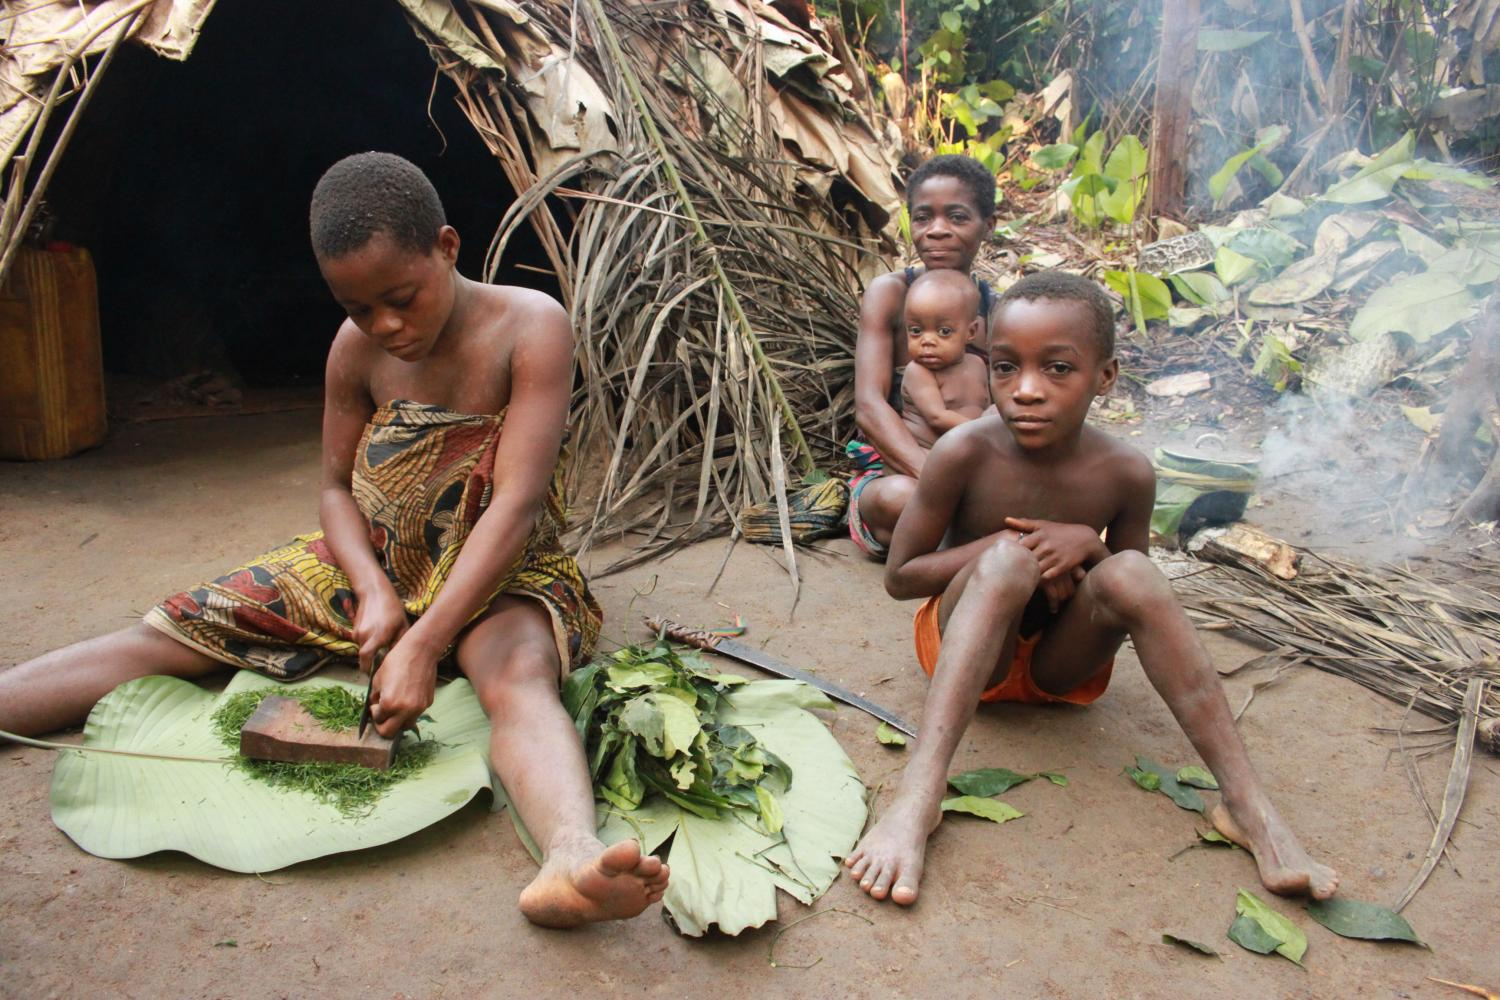 a overview of three main pygmy groups in africa The pygmies of central africa adults usually grow to be only three or four feet tall some pygmy groups use nets to hunt, while others use spears or bows and.